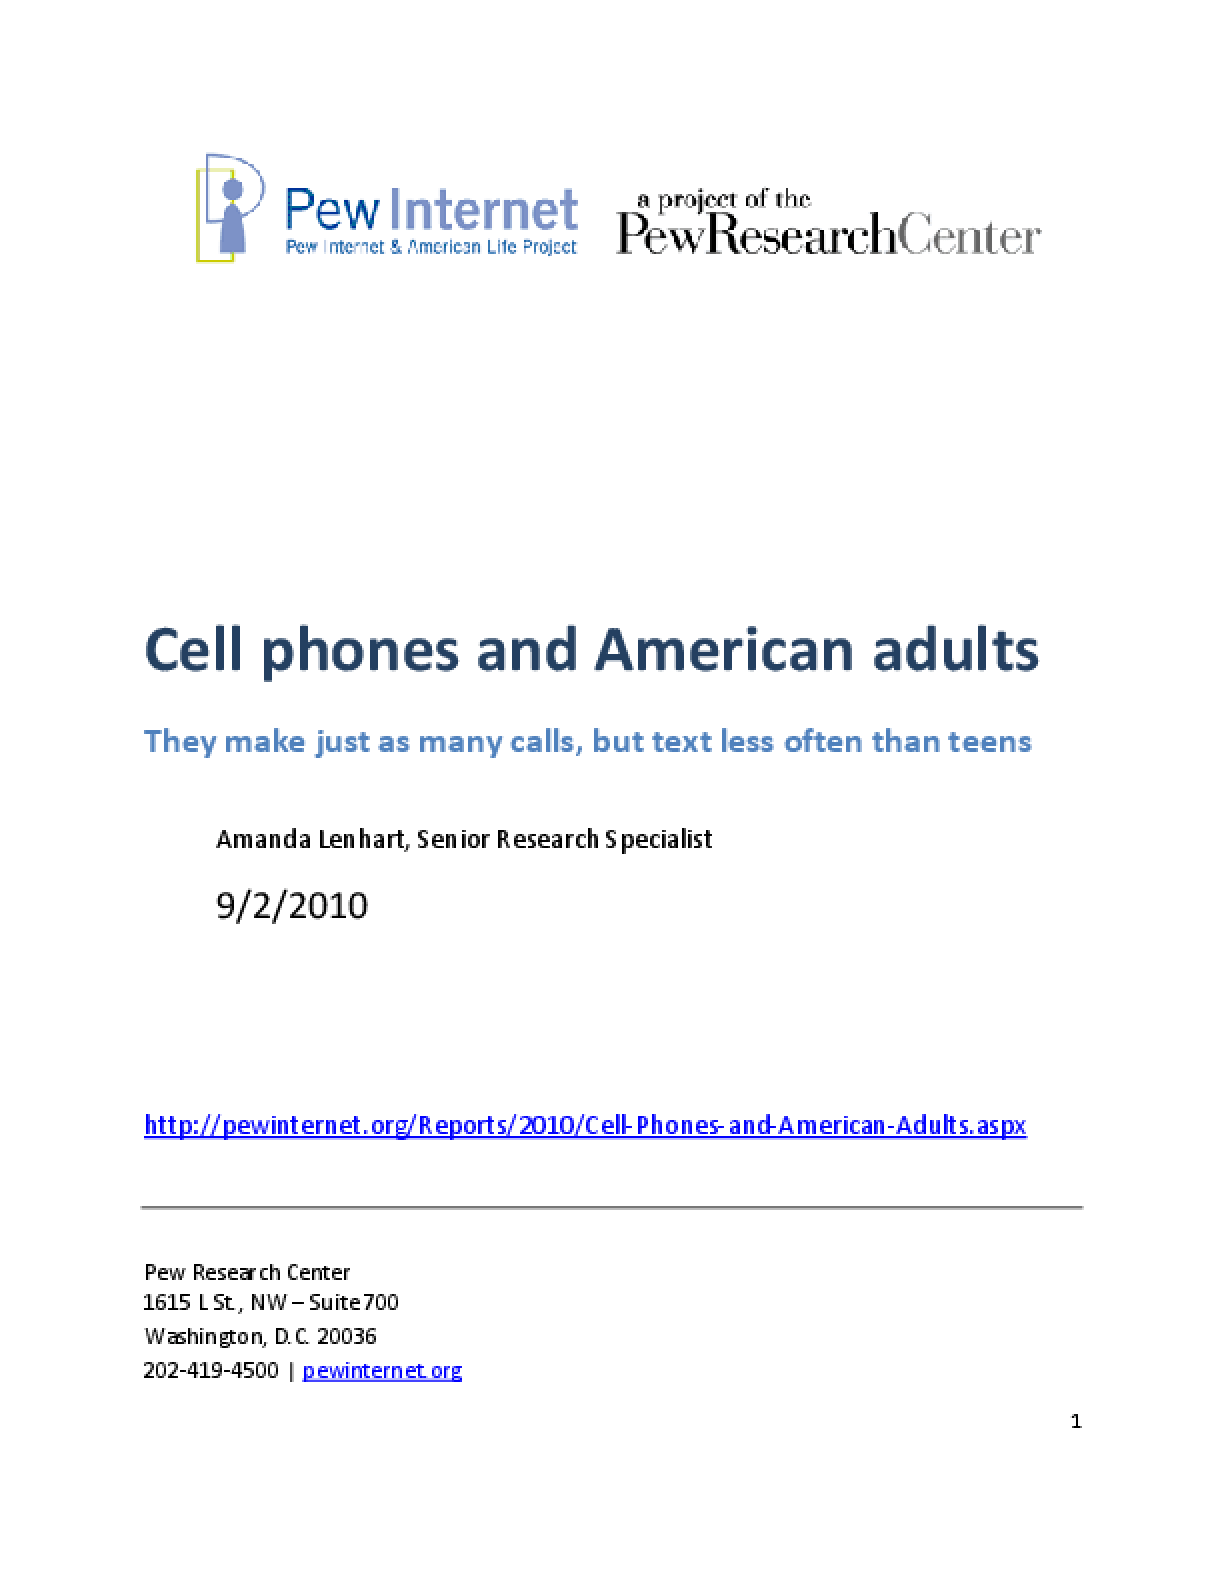 Cell Phones and American Adults